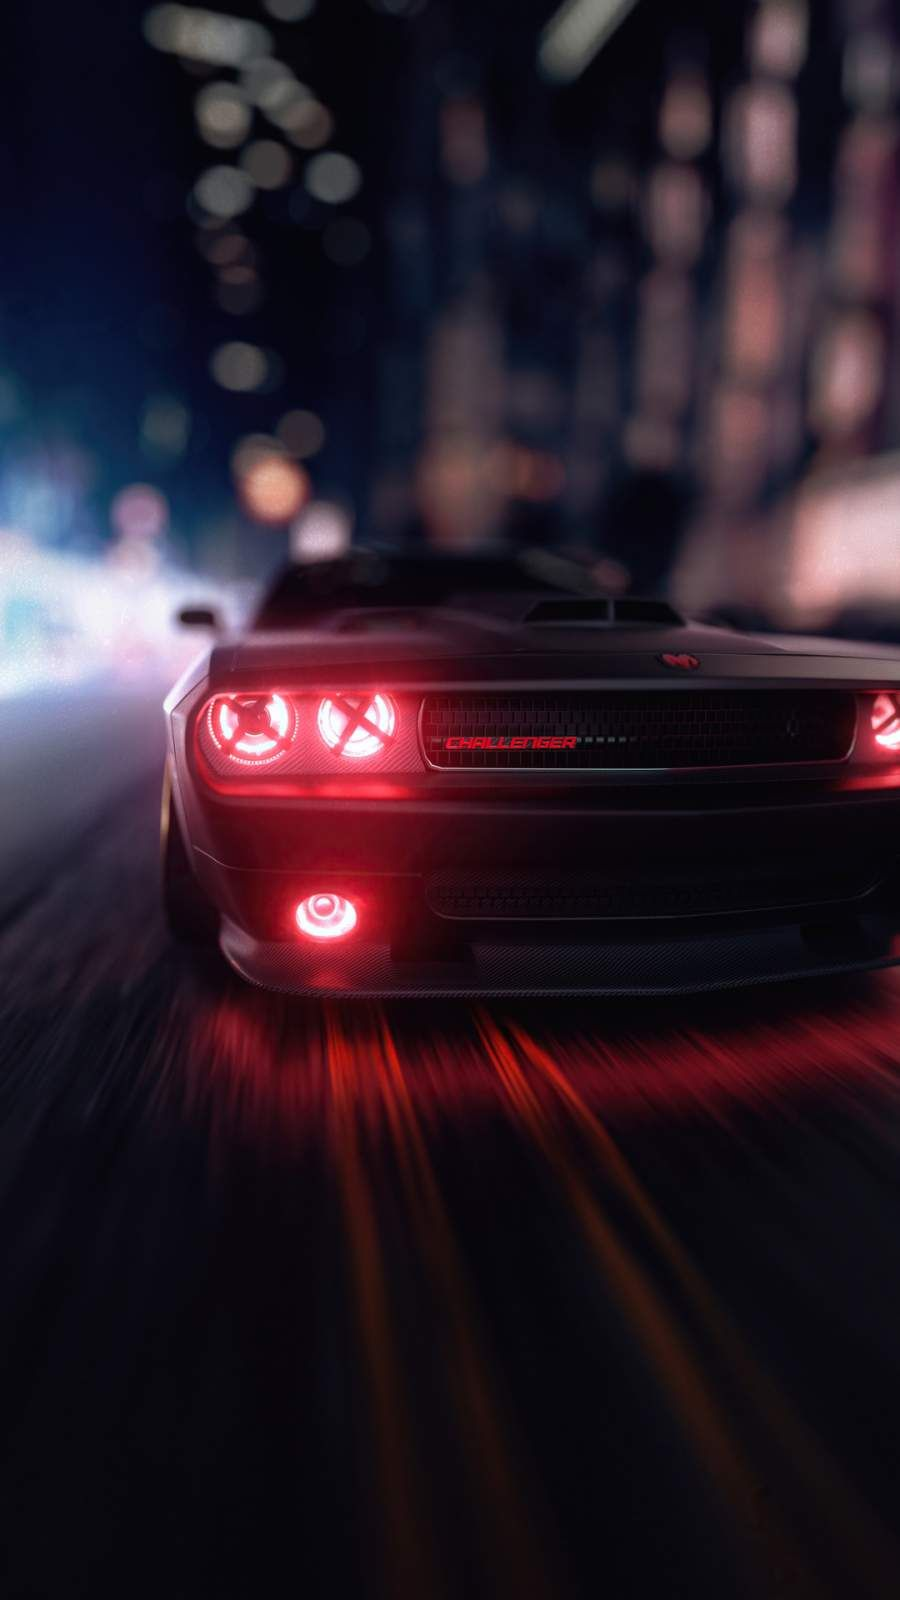 Iphone Wallpapers For Iphone 12 Iphone 11 Iphone X Iphone Xr Iphone 8 Plus High Quality Wallpape Black Car Wallpaper Mustang Wallpaper Car Iphone Wallpaper